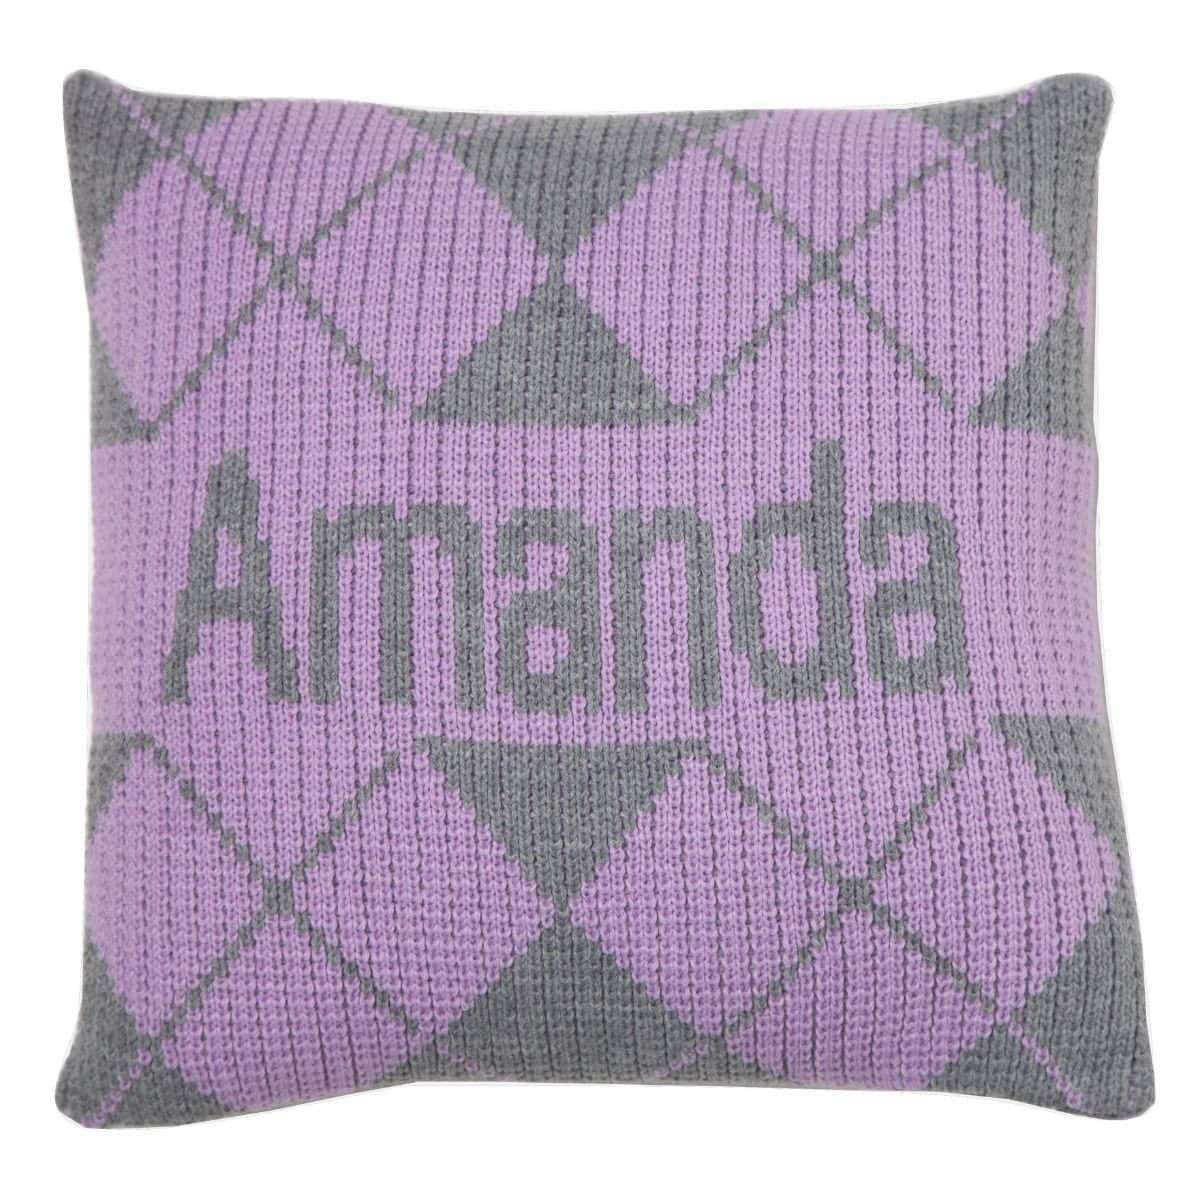 Argyle & Name Personalized Pillow-Pillow-Default-Jack and Jill Boutique